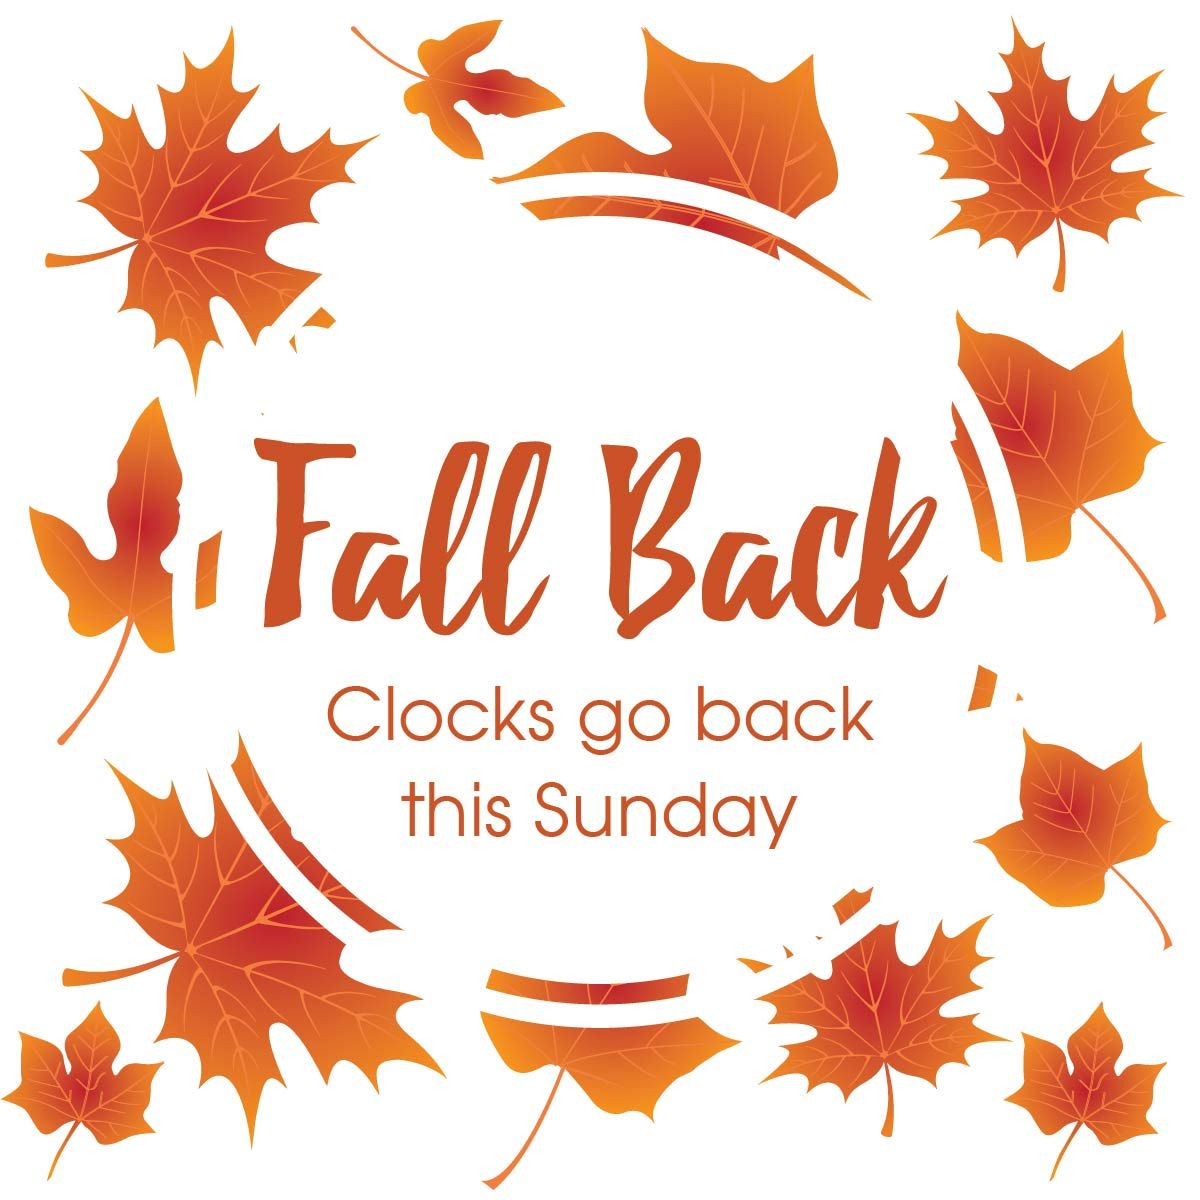 Reminder - The clocks go back one hour this Sunday #daylightsavings https://t.co/f8vtyw7cVx